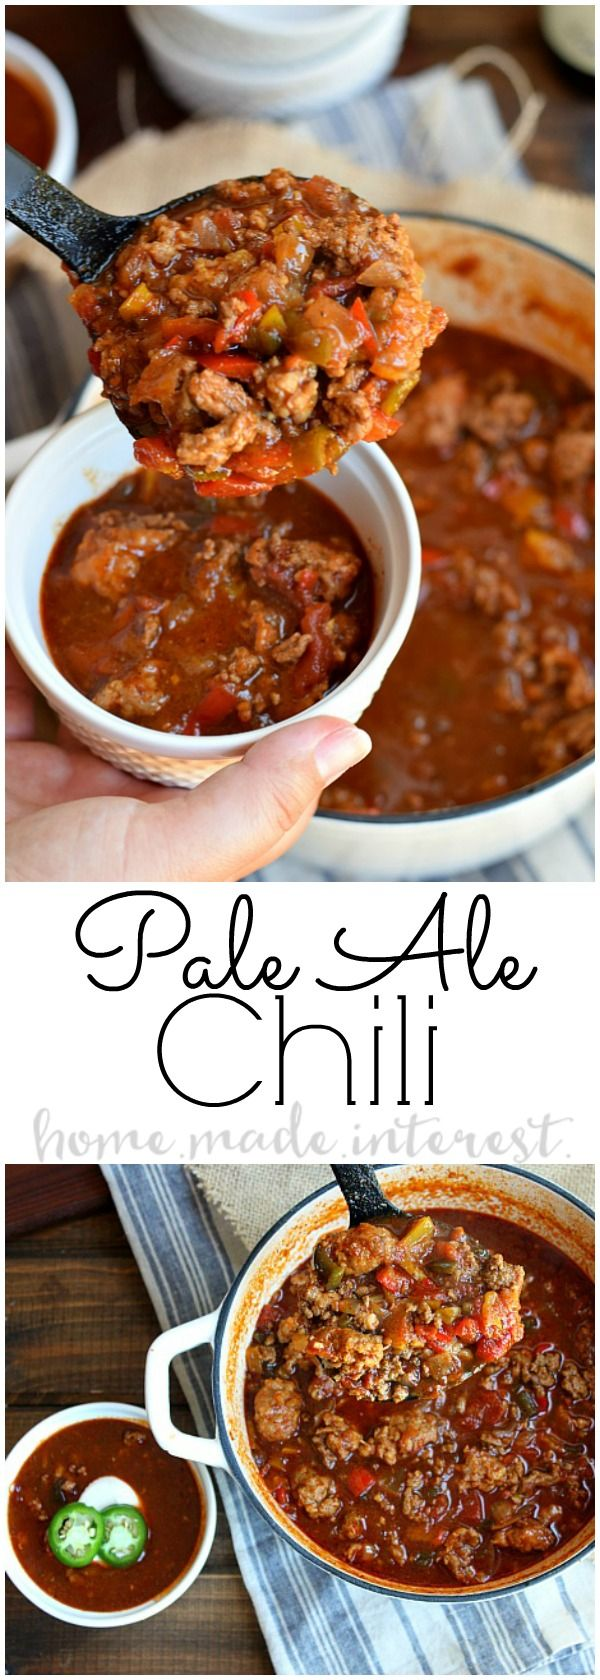 Easy chili recipe made with Pale Ale beer. Not made in the crock pot but on the stove top is perfect for your game day party this football season. Craft beer is a huge trend so this Pale Ale Chili is sure to be a hit. This game day chili is hearty and full of flavor.